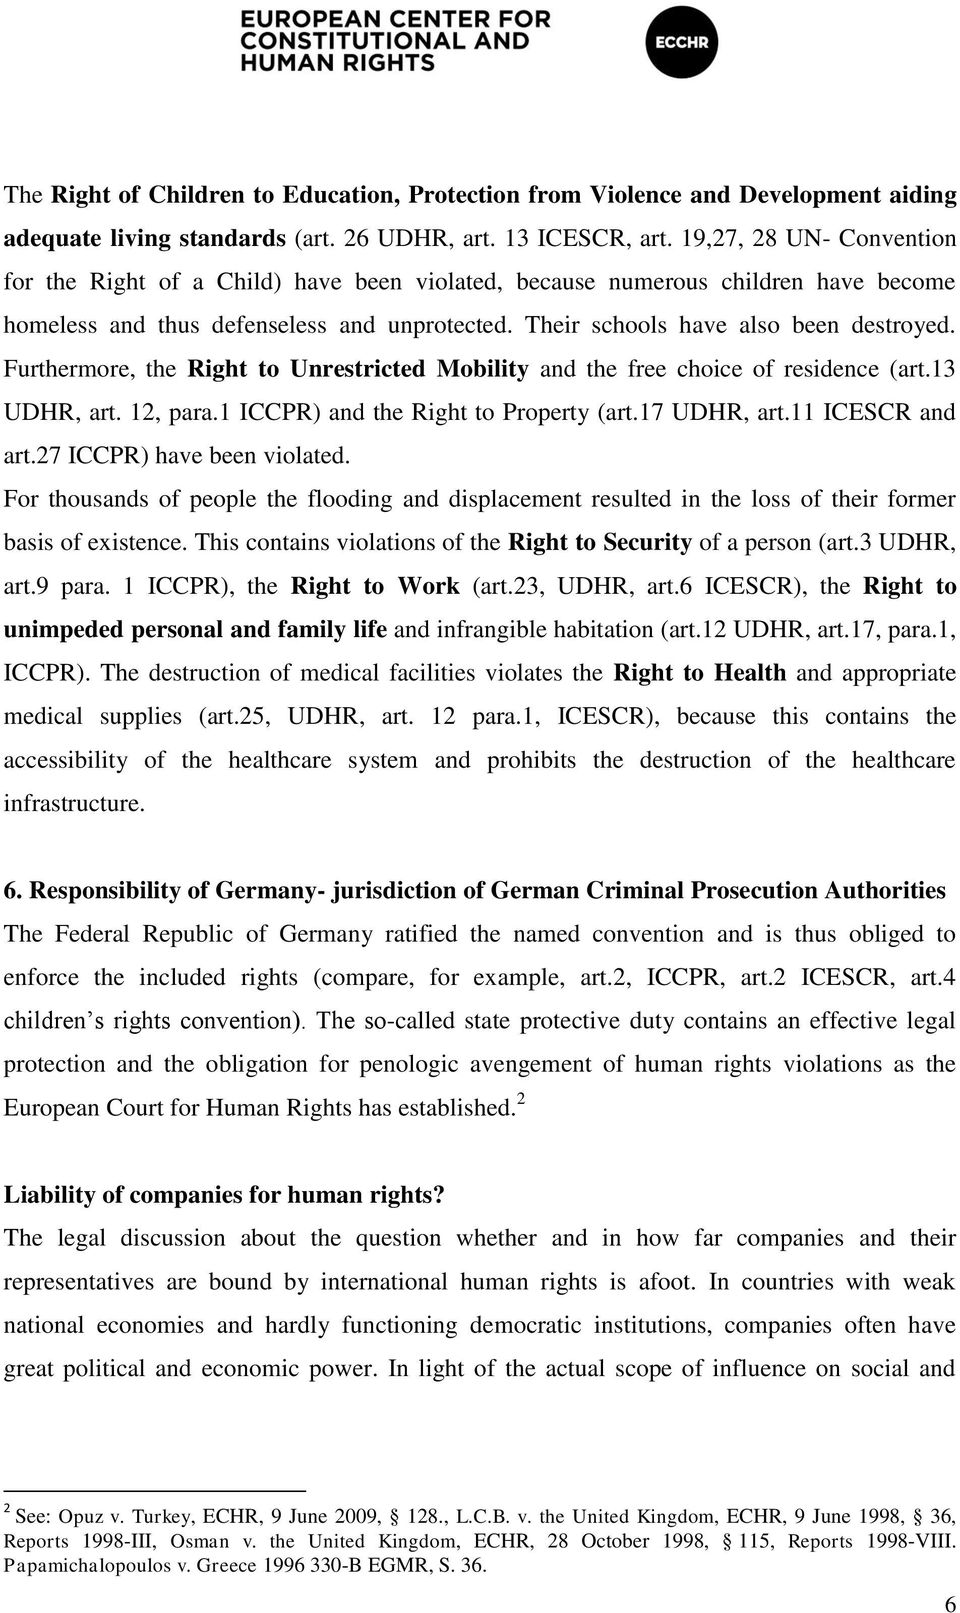 Furthermore, the Right to Unrestricted Mobility and the free choice of residence (art.13 UDHR, art. 12, para.1 ICCPR) and the Right to Property (art.17 UDHR, art.11 ICESCR and art.